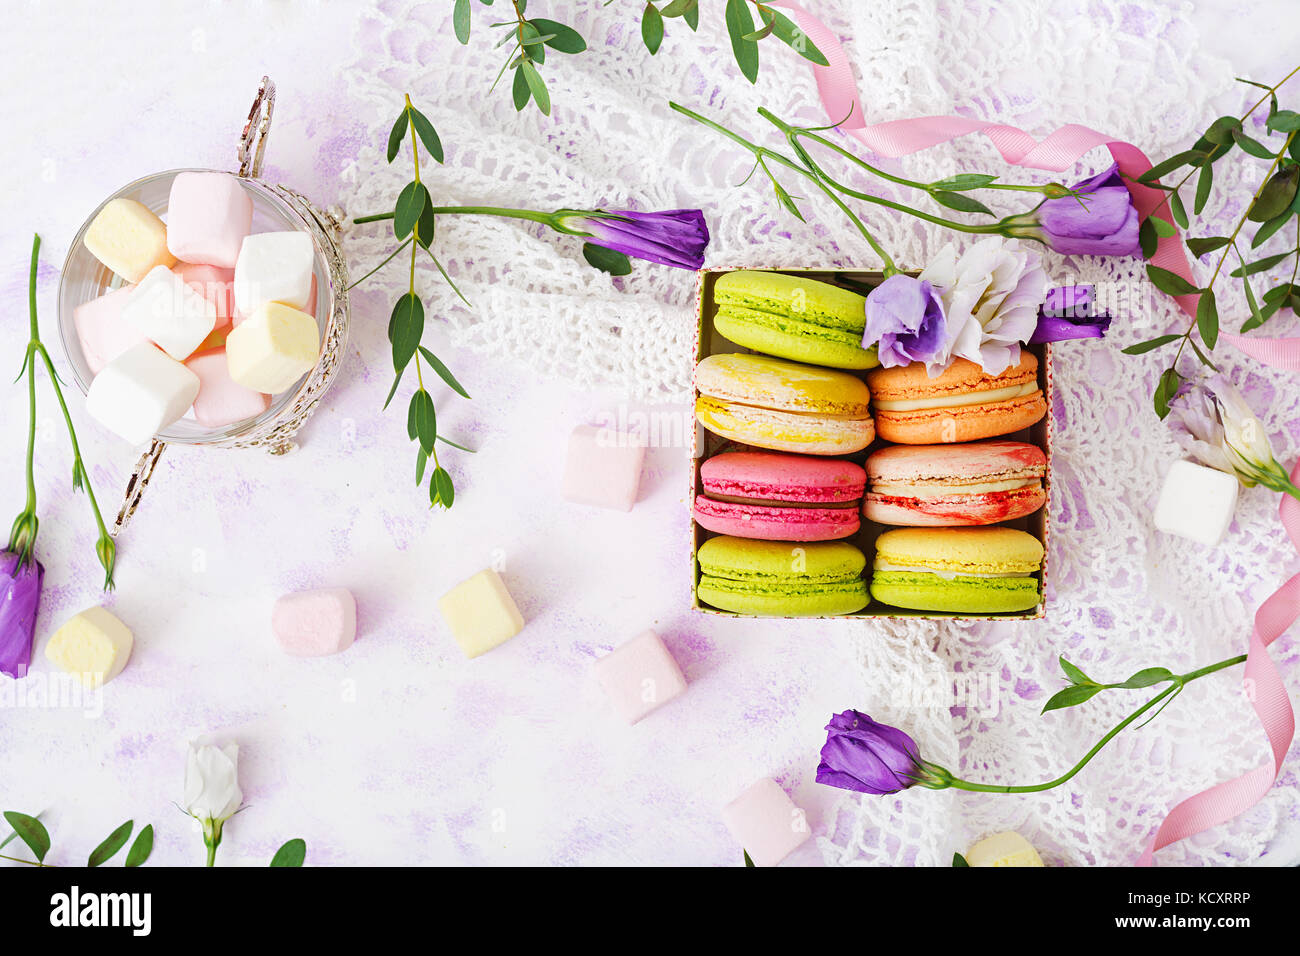 Colorful macaroons and marshmallows on a ligth  background. Flat lay. Top view - Stock Image